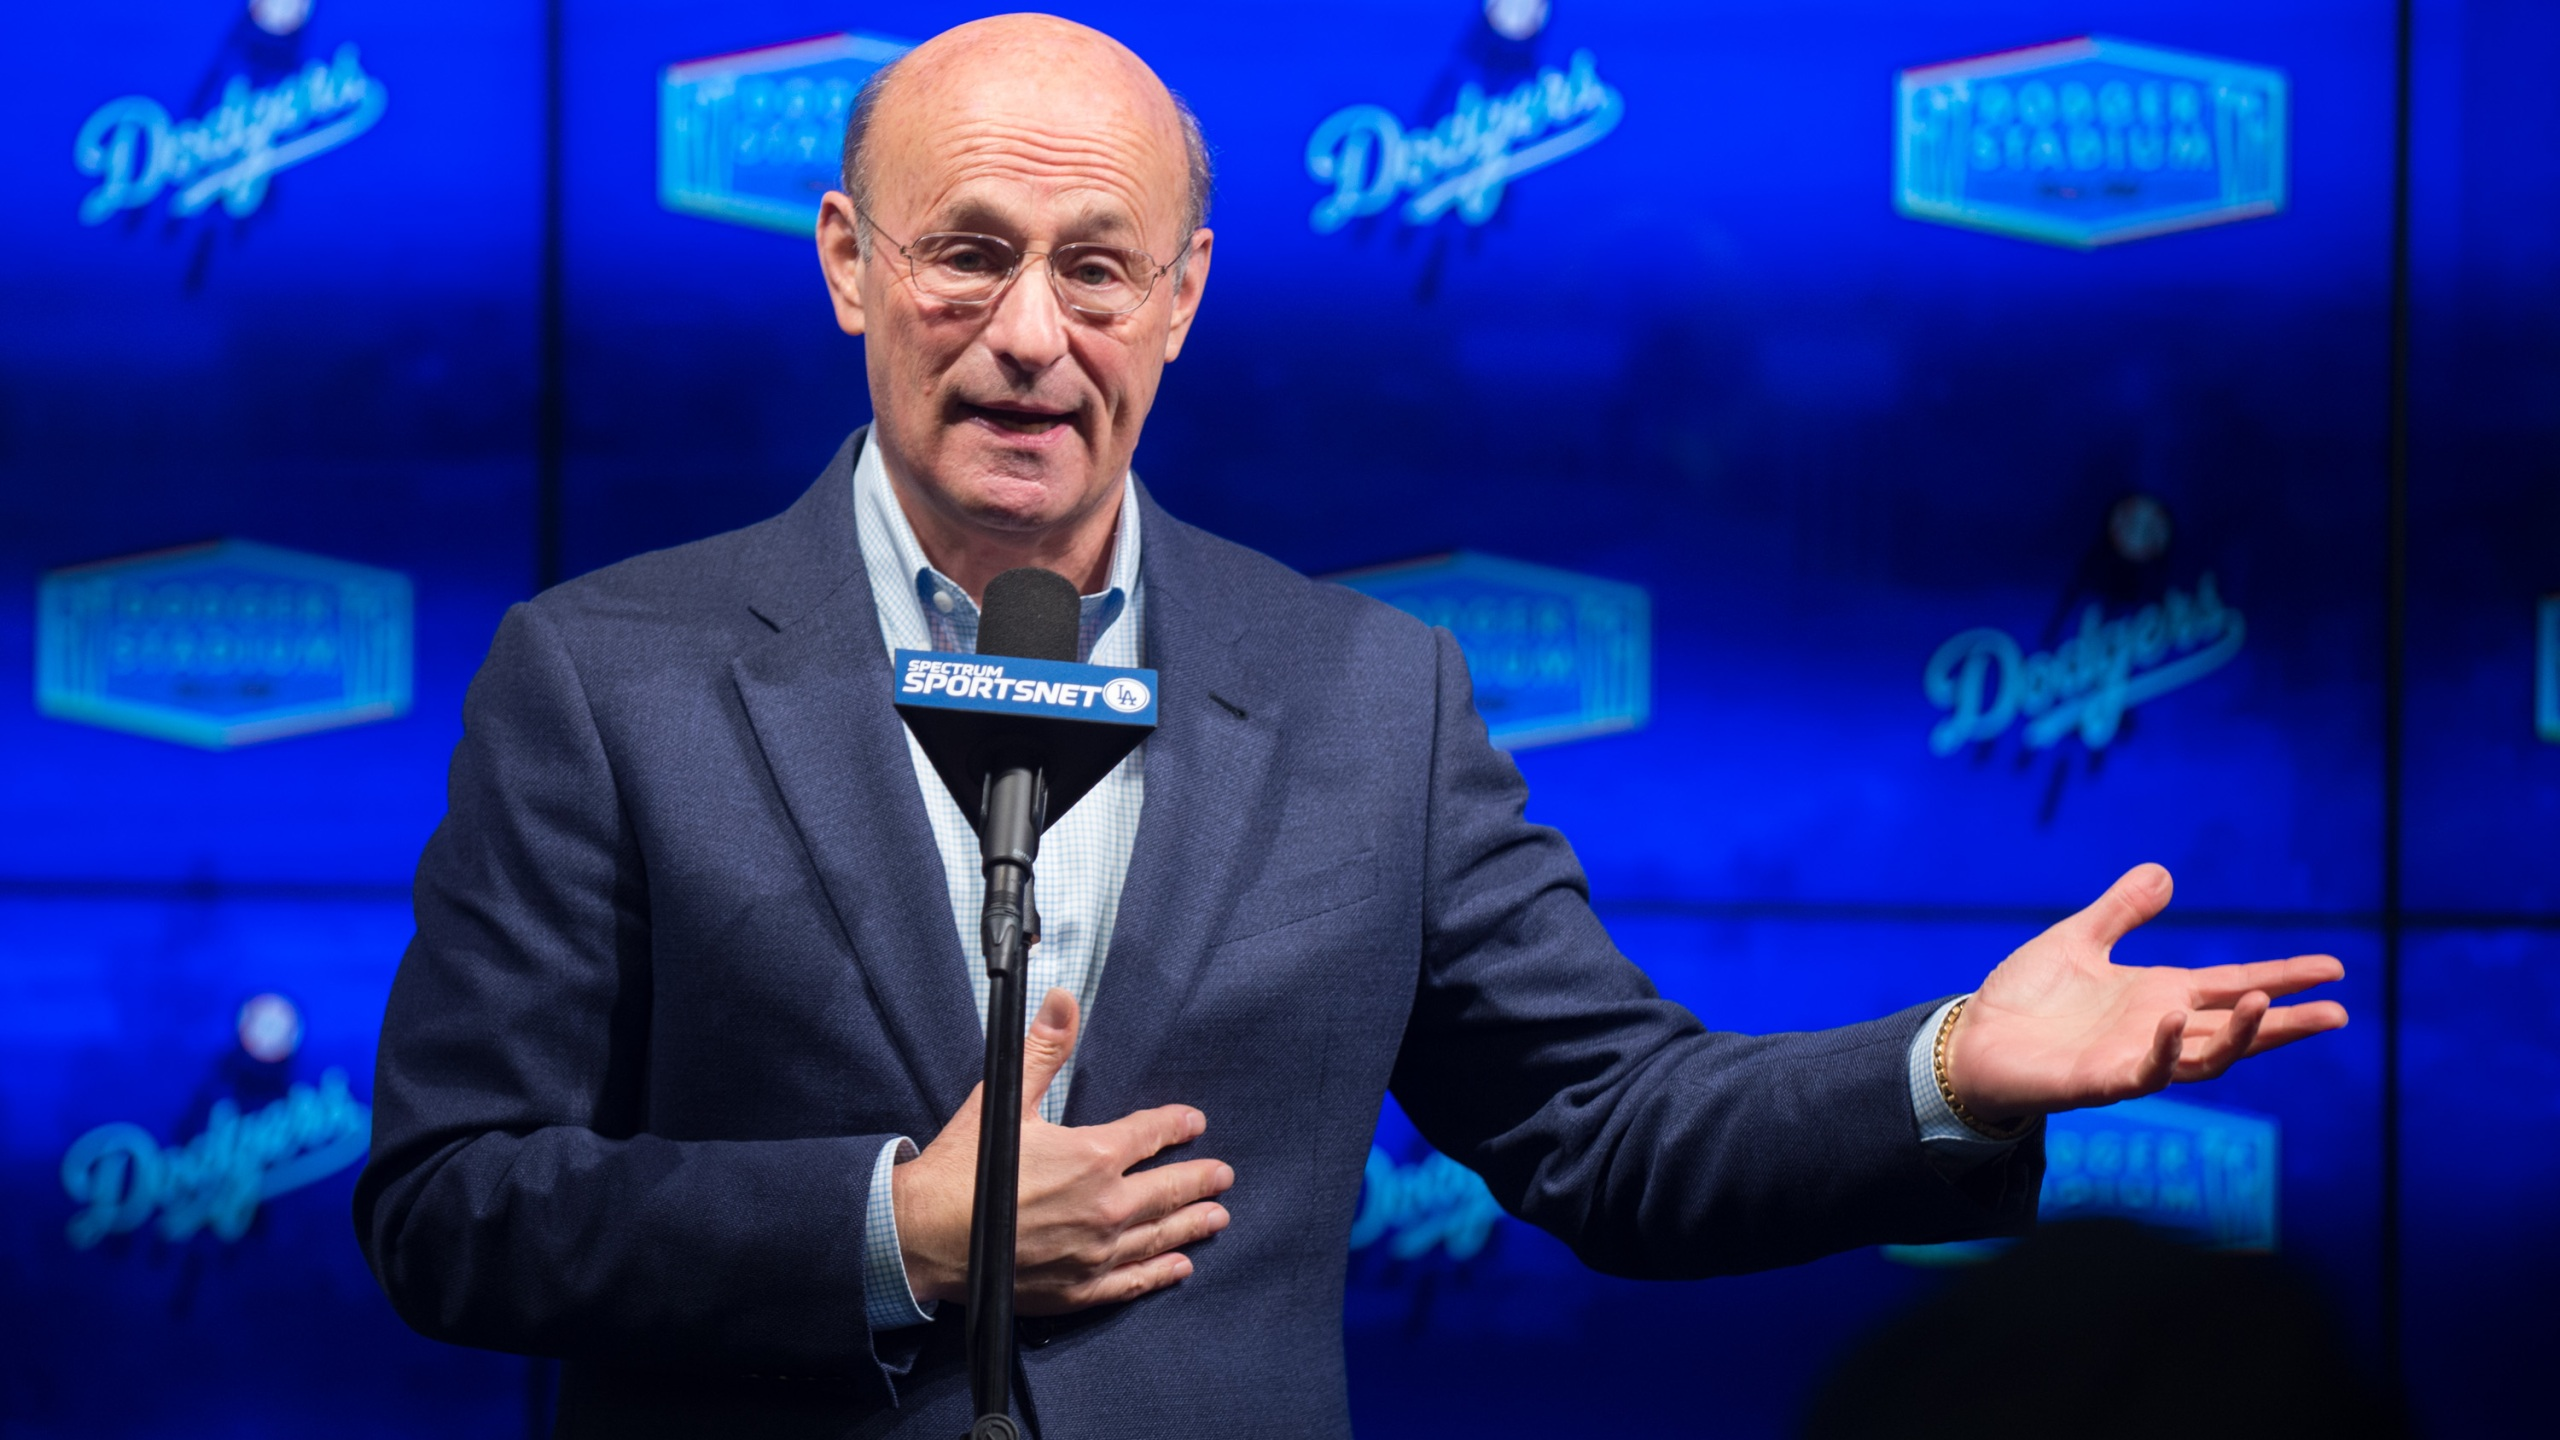 President of the Los Angeles Dodgers Stan Kasten speaks at Dodger Stadium on Jan. 5, 2017. (Emma McIntyre/Getty Images)